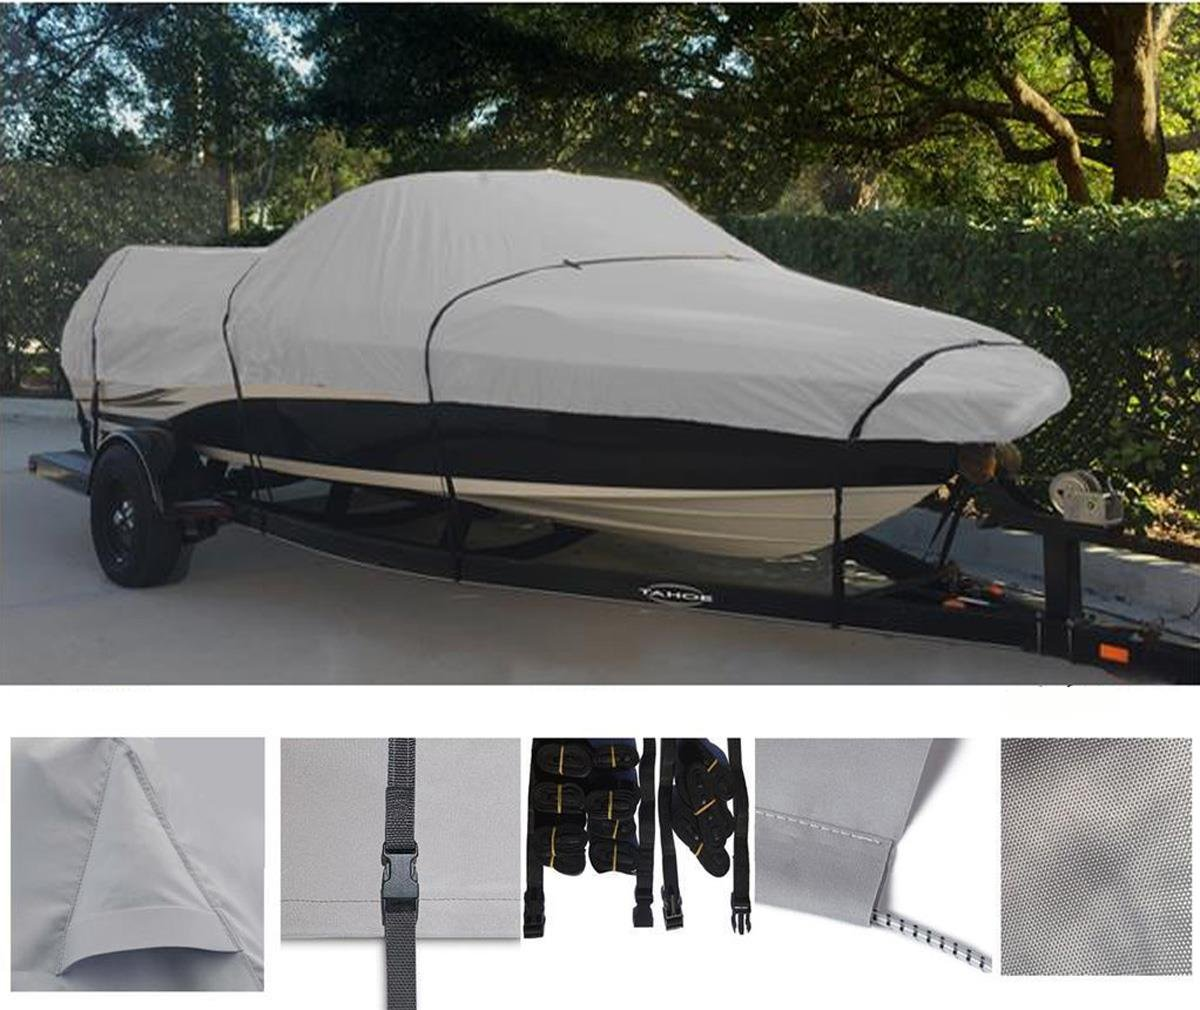 GREY, STORAGE, TRAVEL, MOORING BOAT COVER FOR SPECTRUM PRO AVENGER/SD 19 1995-1997 by SBU